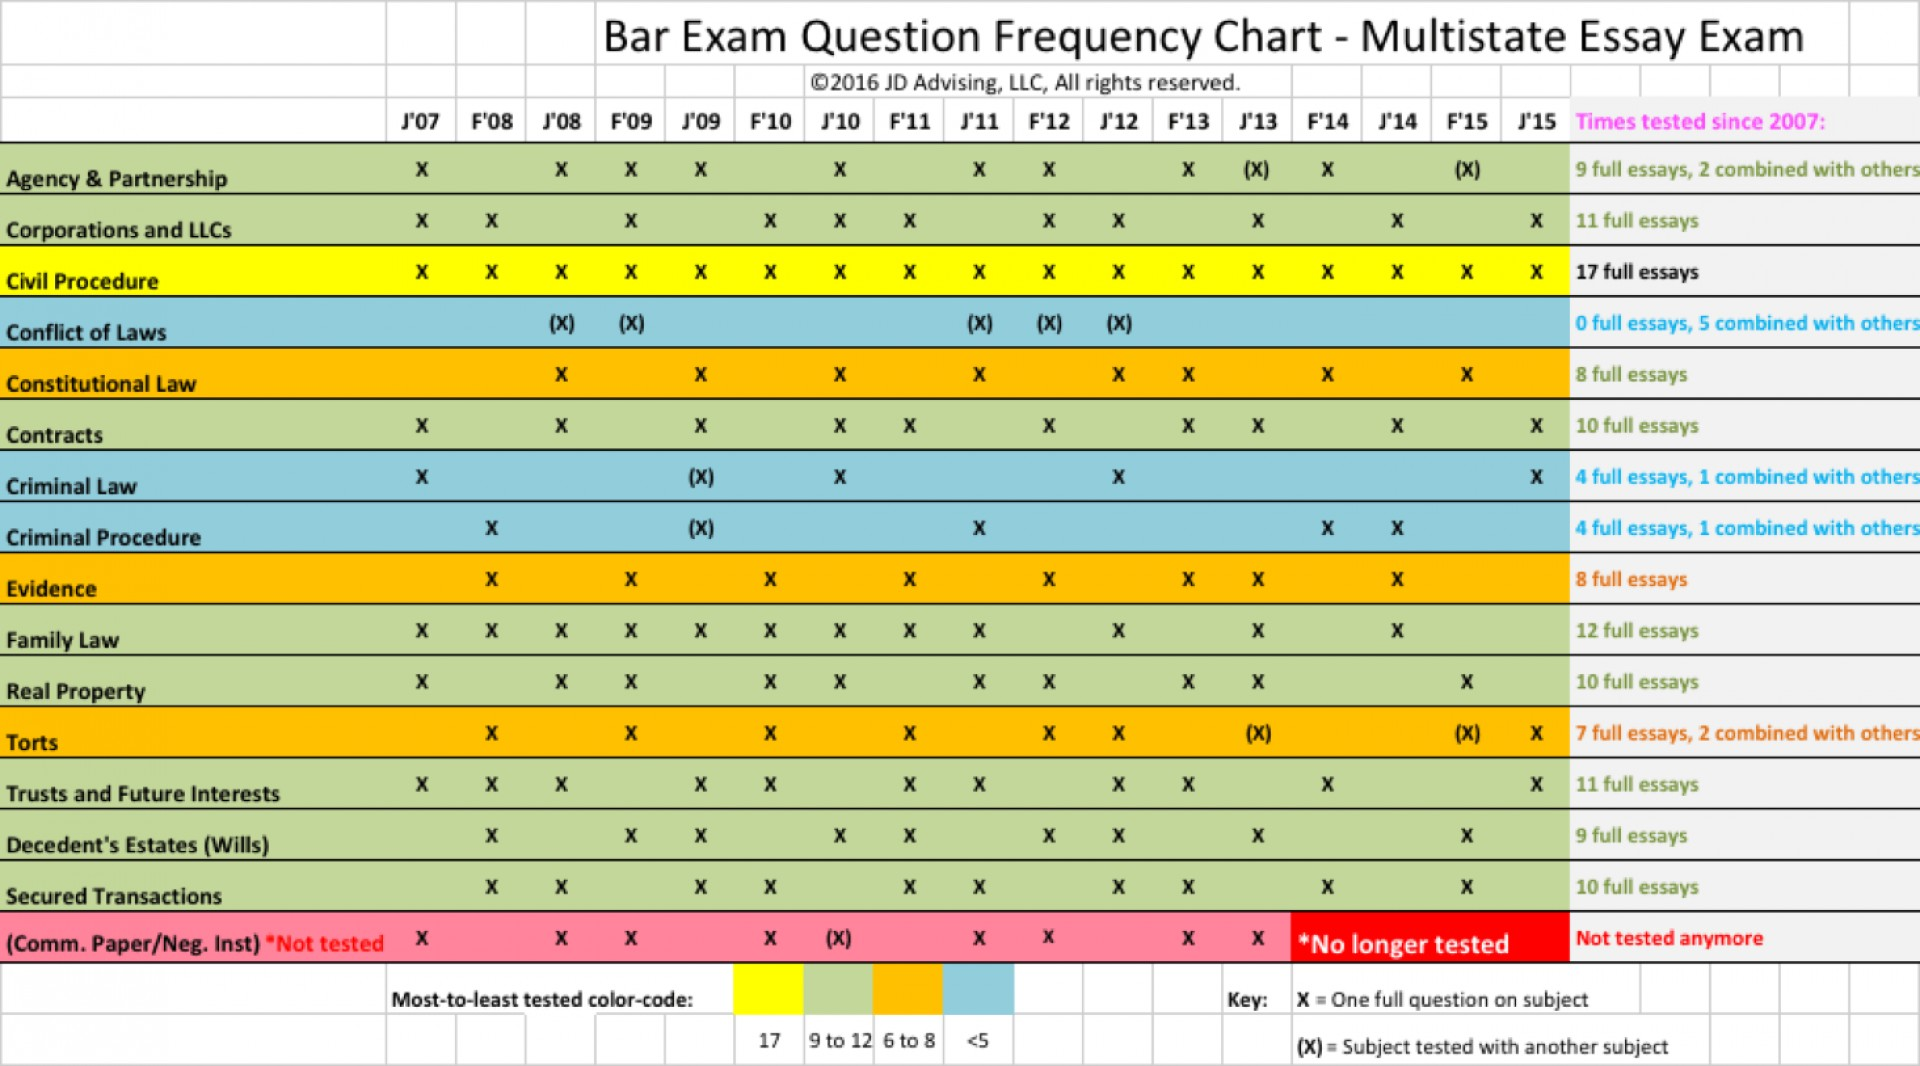 002 Essay Example Bar Essays Mee Chart Incredible Baressays Coupon Code Baressays.com Ny Predictions 1920